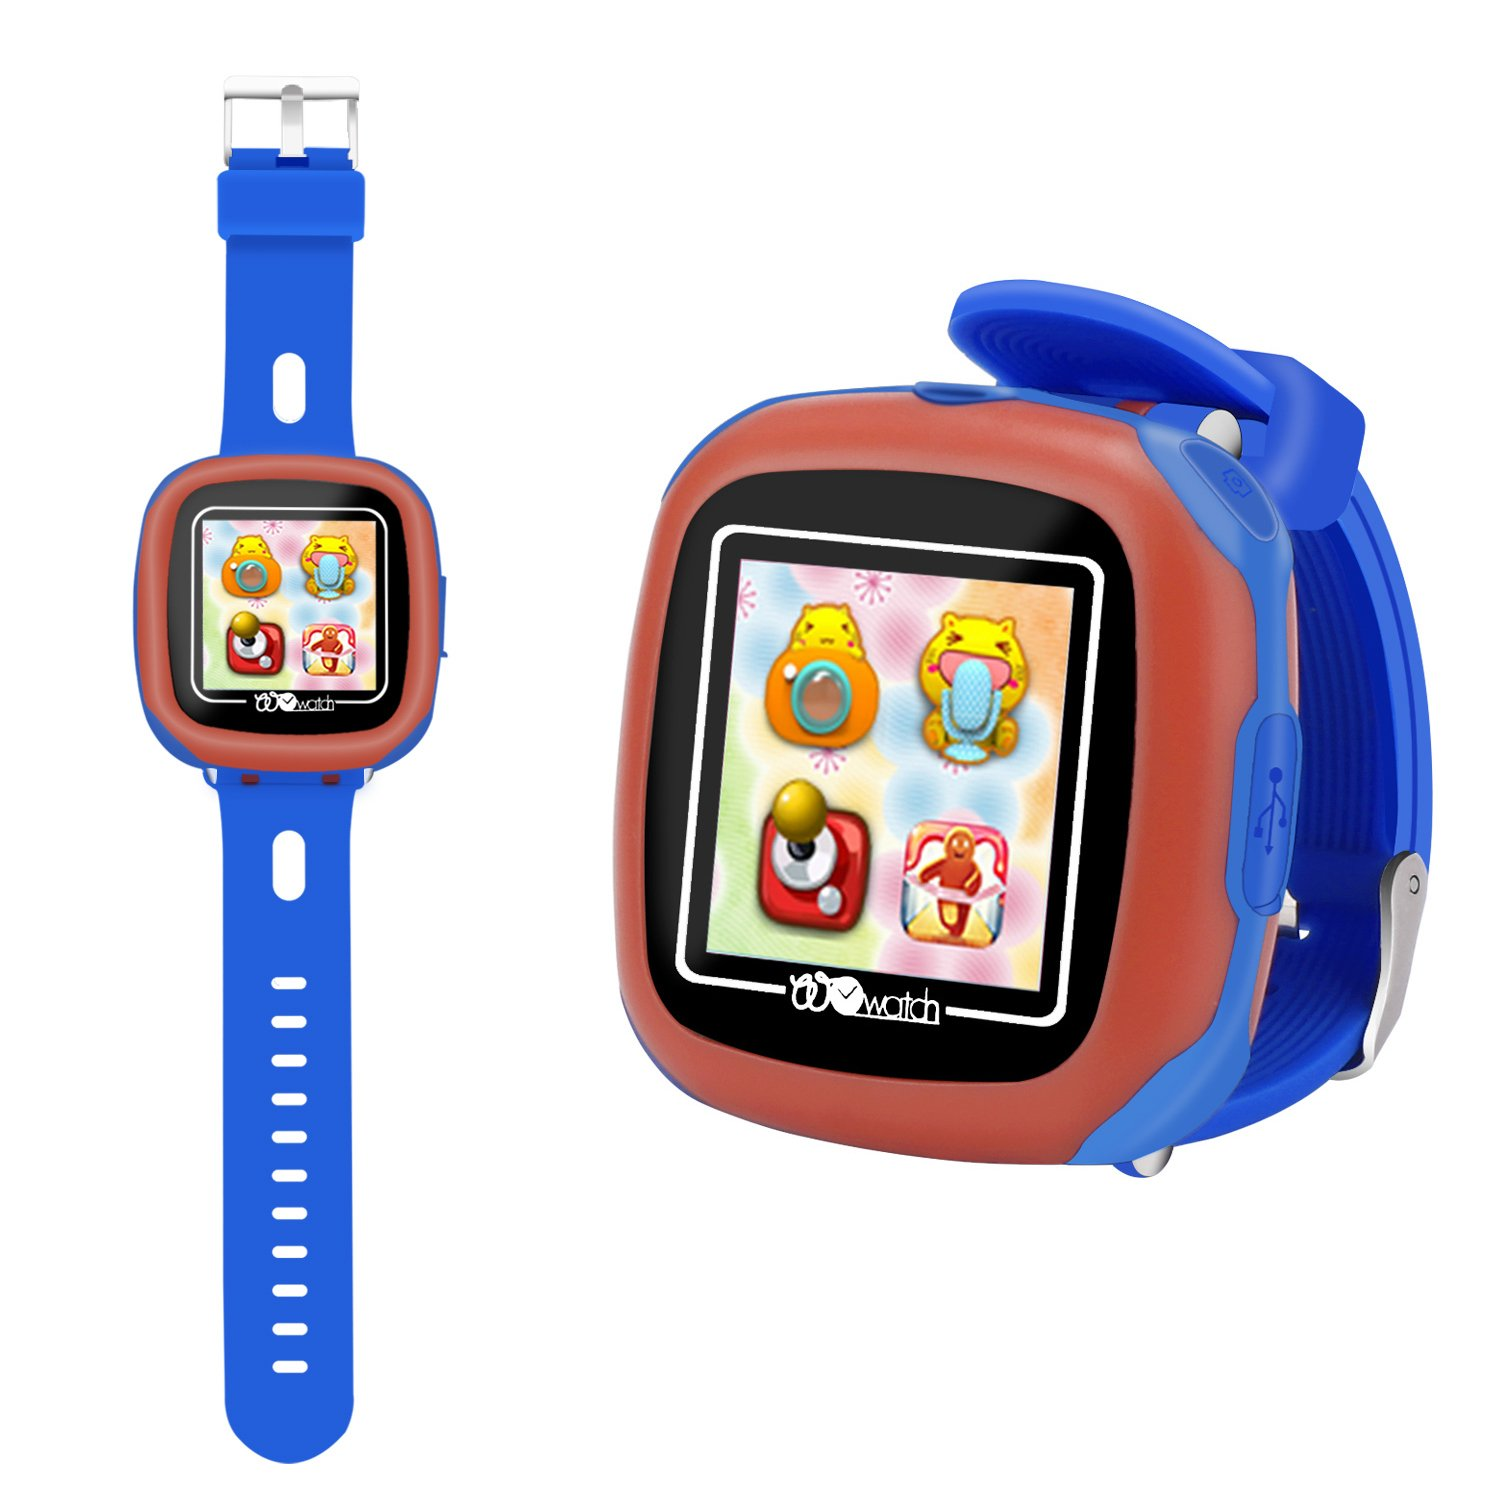 HSX_Z Smart Watch for Kids with Digital Camera Games Touch Screen, Cool Toys Watch Gifts for Girls Boys Children Learning Toys (Blue)